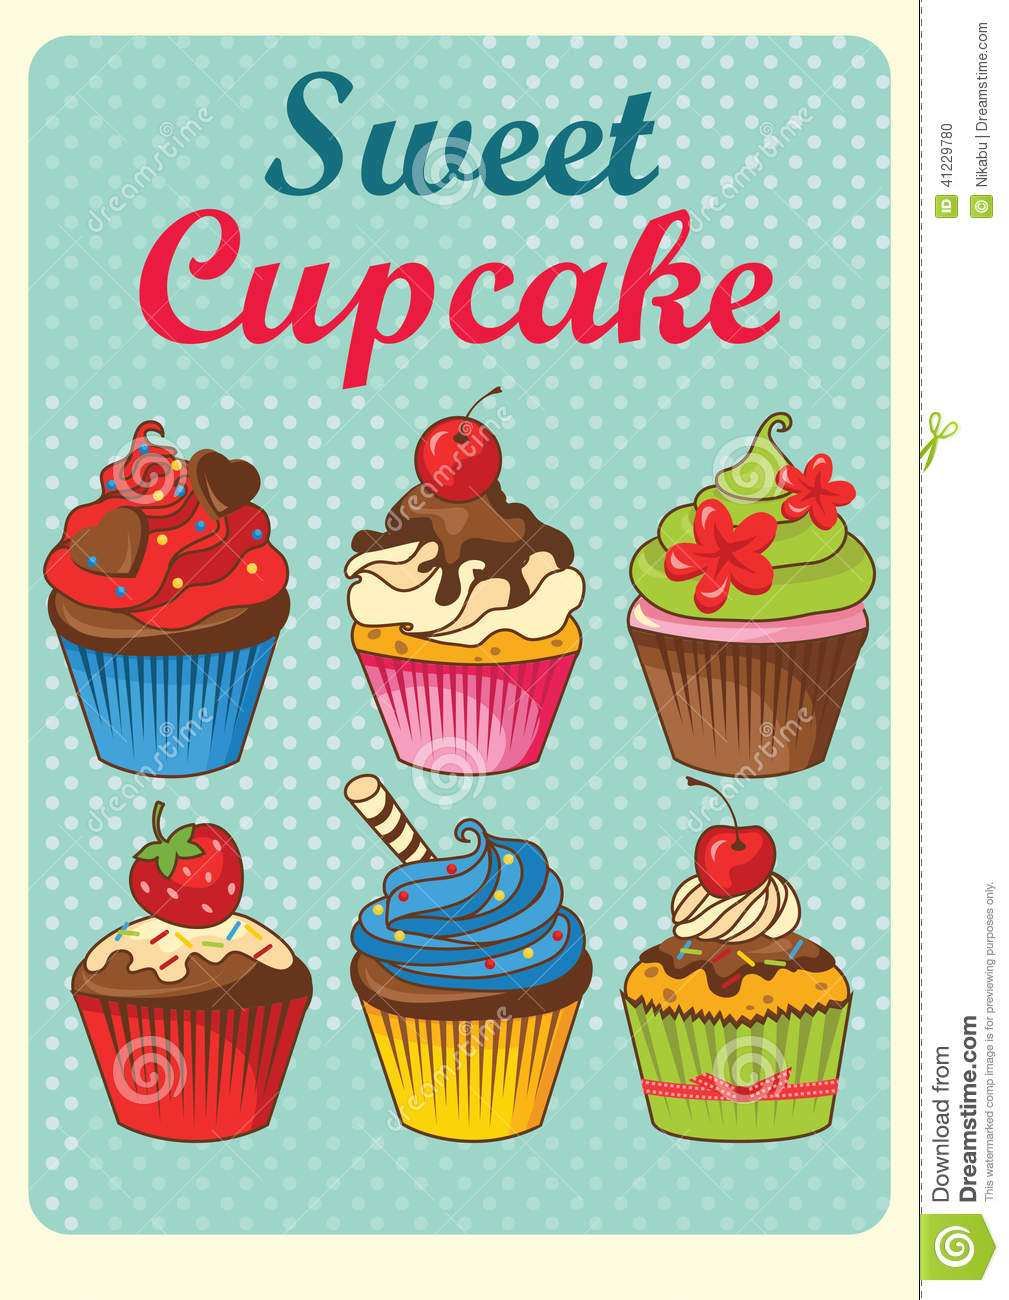 Sweet Cupcakes Vintage Style Stock Vector - Illustration of cake, heart: 41229780